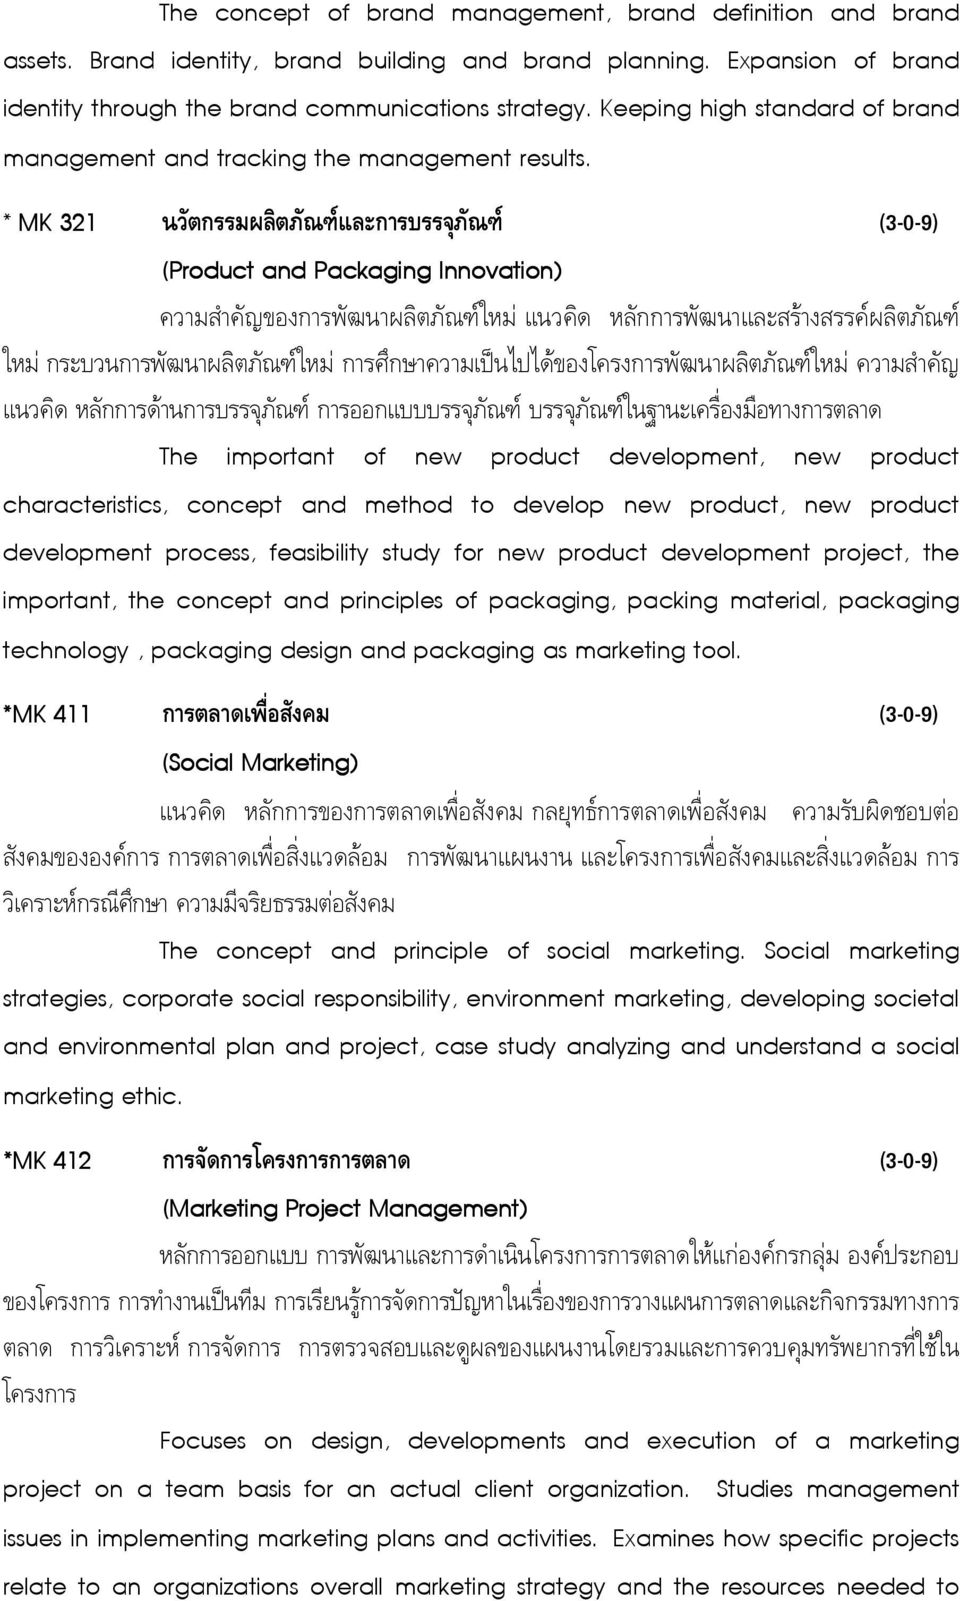 * MK 321 ก ก (3-0-9) (Product and Packaging Innovation) ก กก ก ก ก ก ก กก ก ก ก ก The important of new product development, new product characteristics, concept and method to develop new product, new